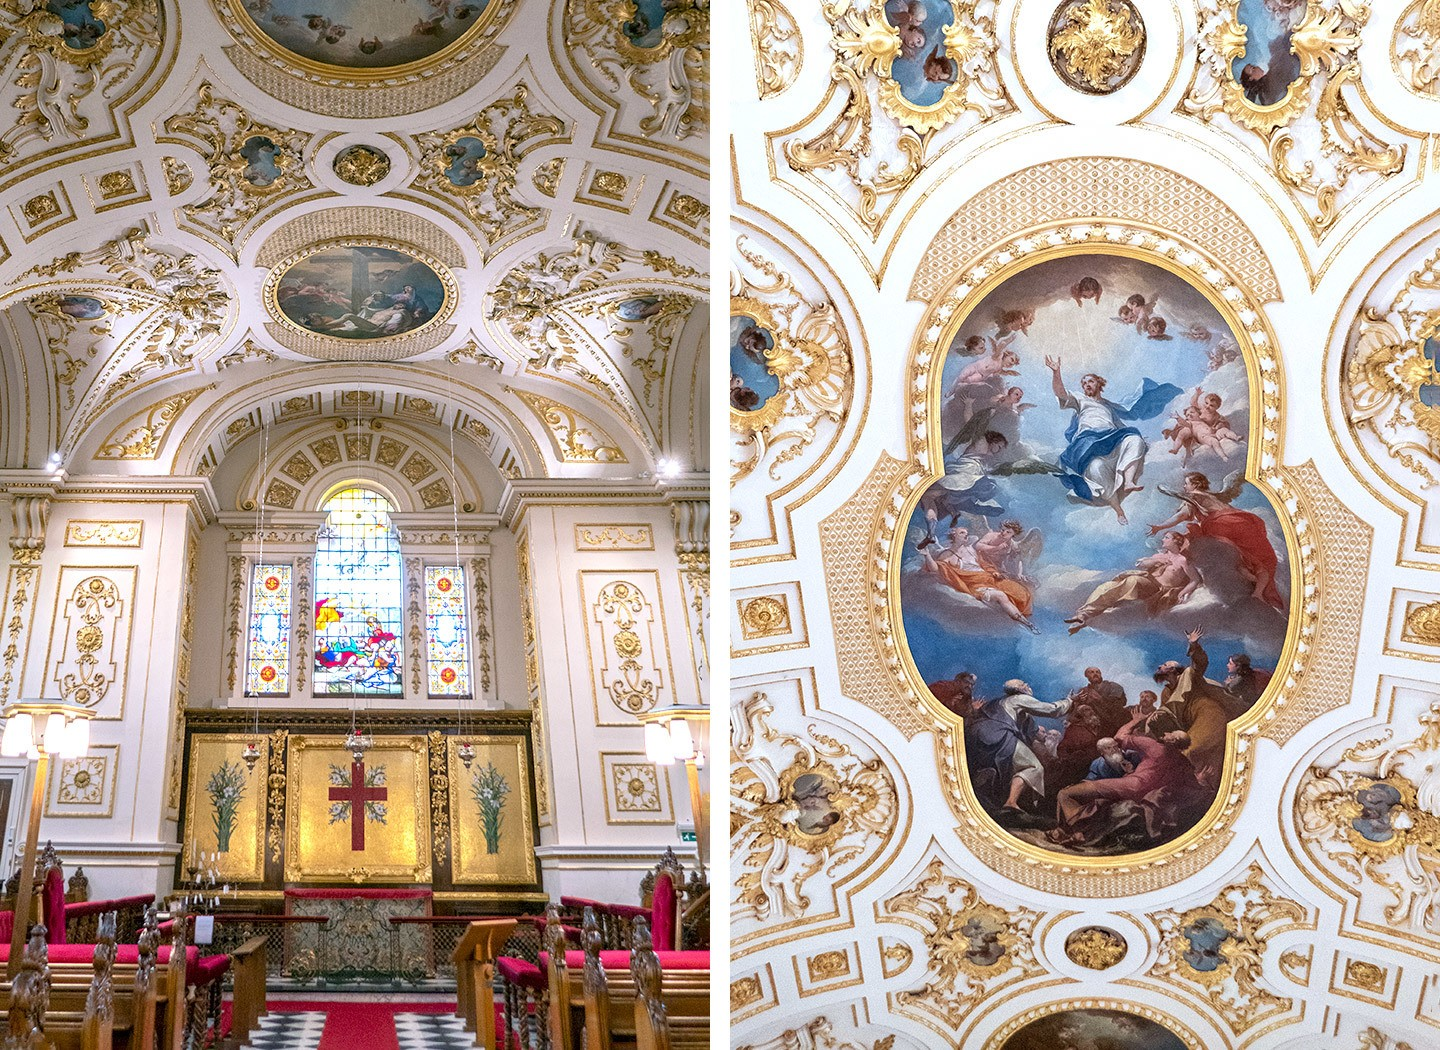 The Baroque interiors of Great Witley Church